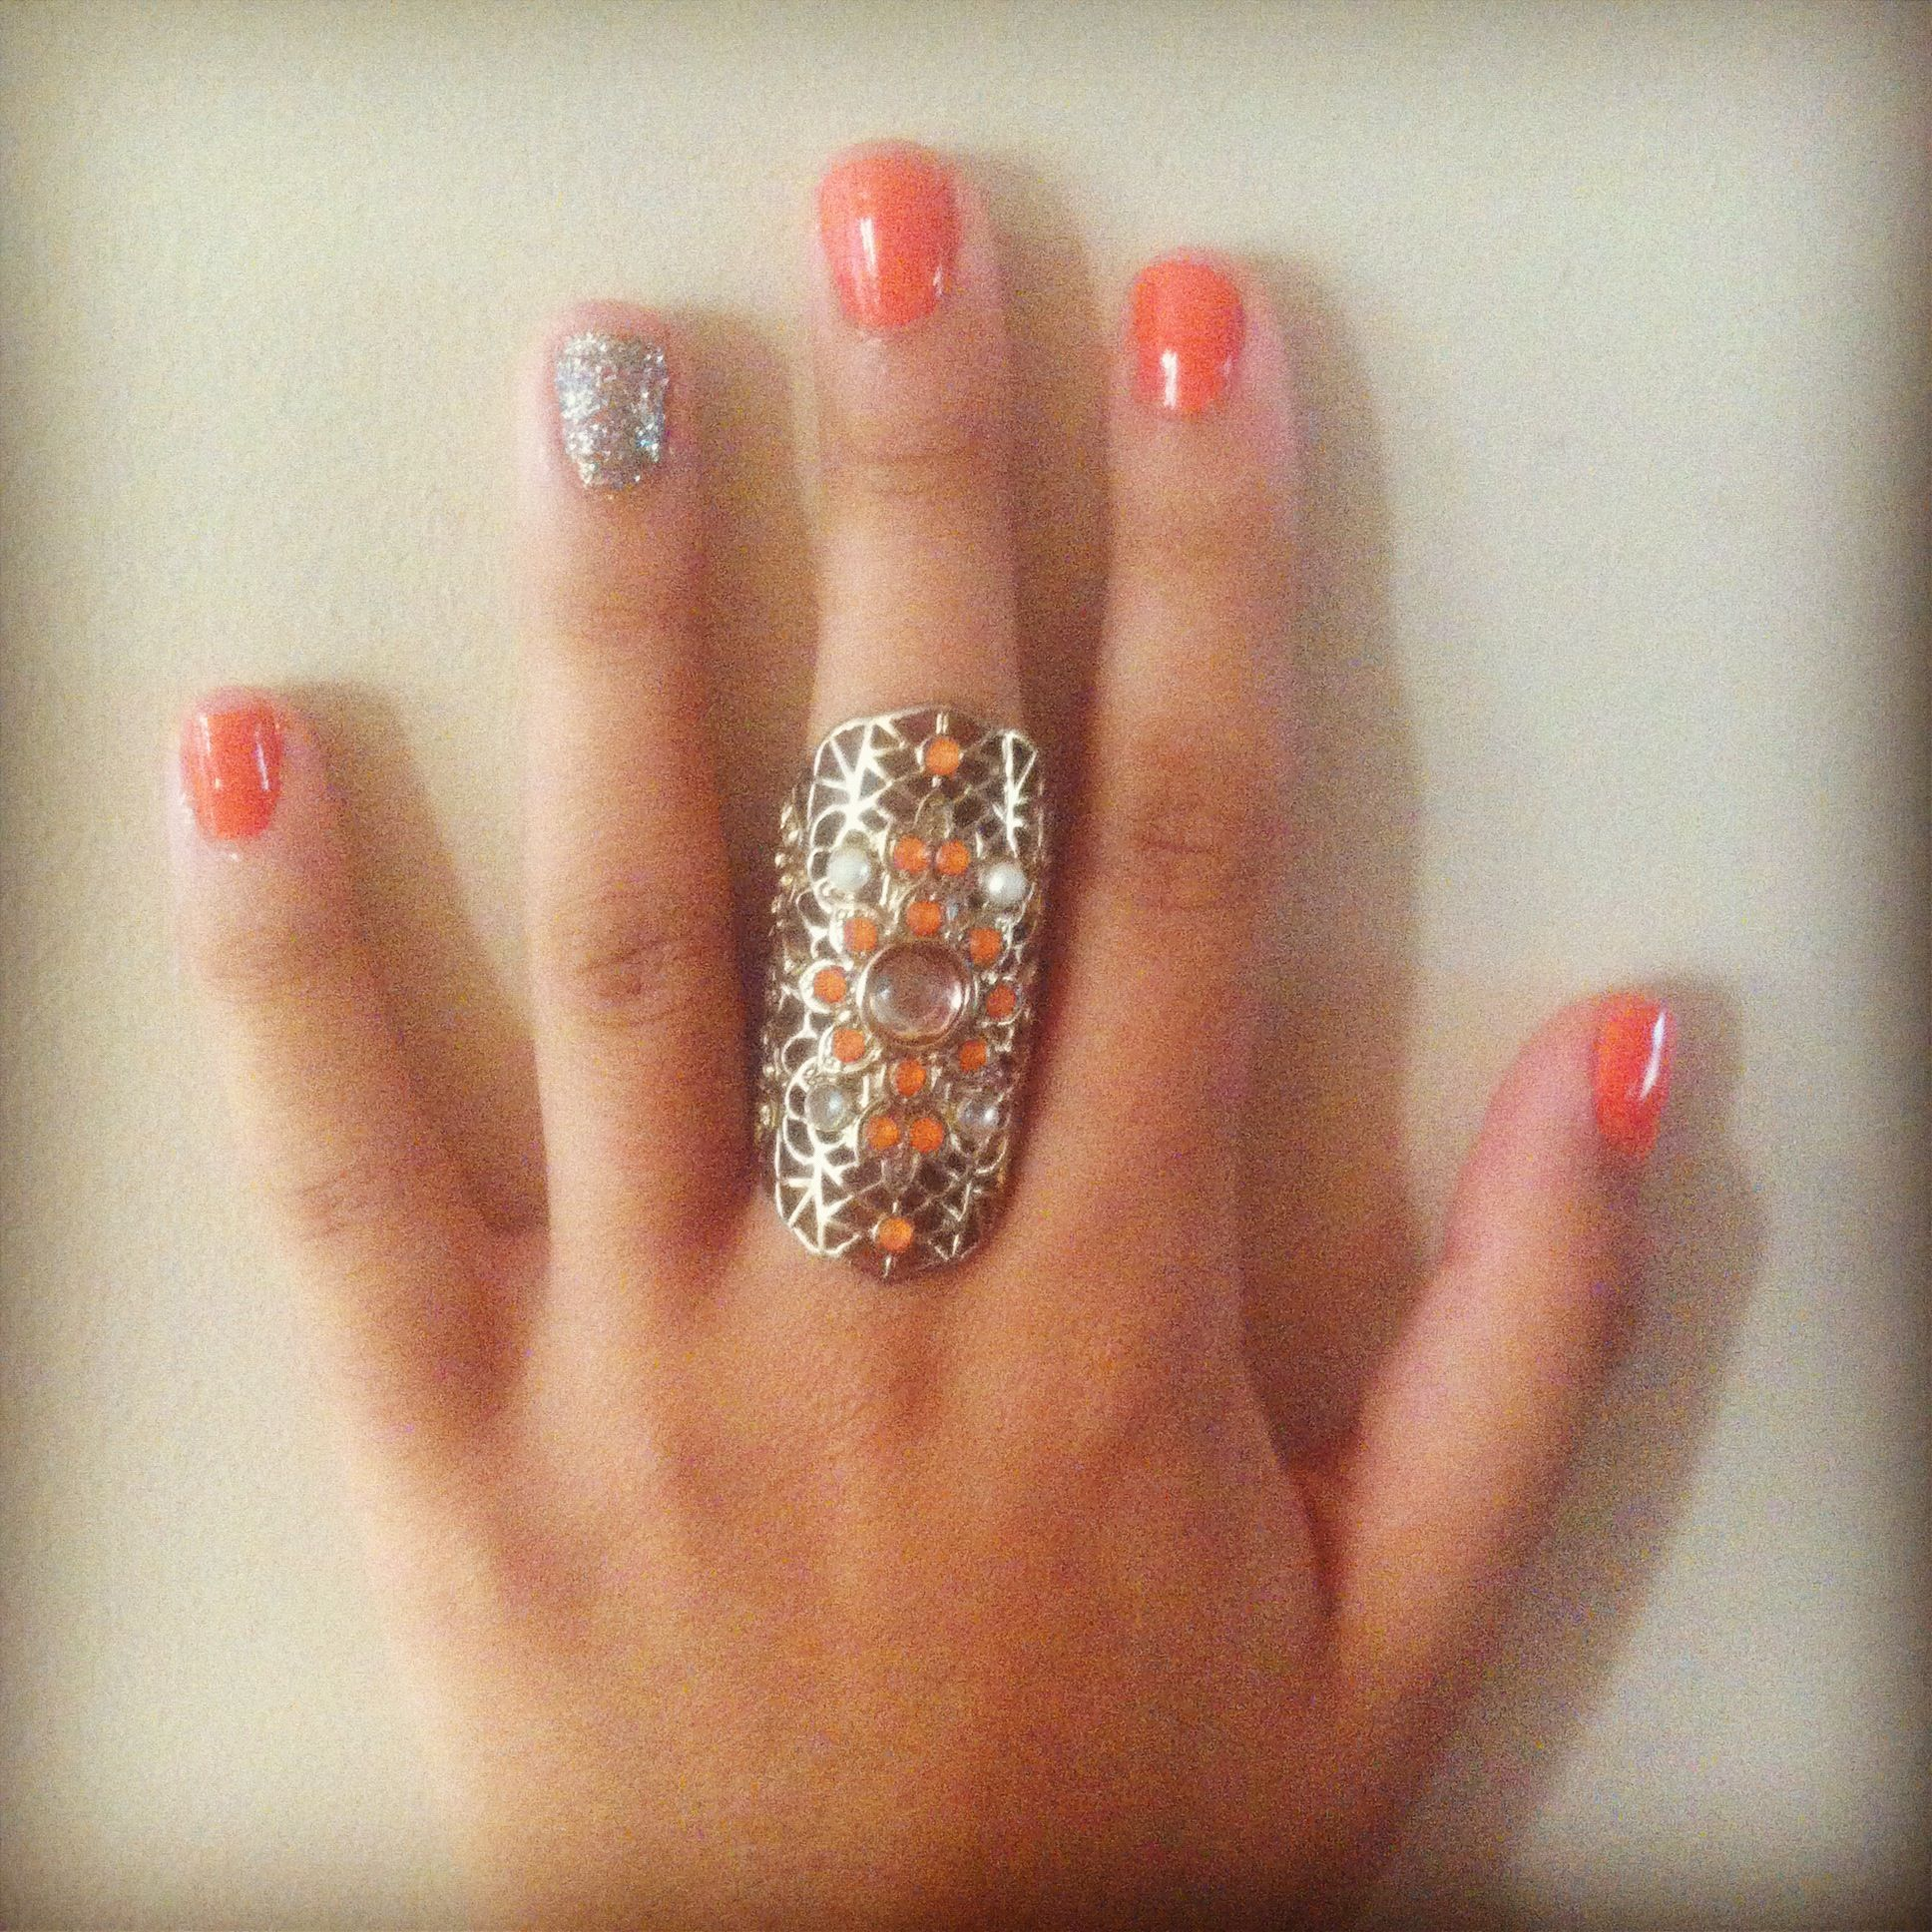 Easy Fall Nails: Cute And Easy Fall Nails